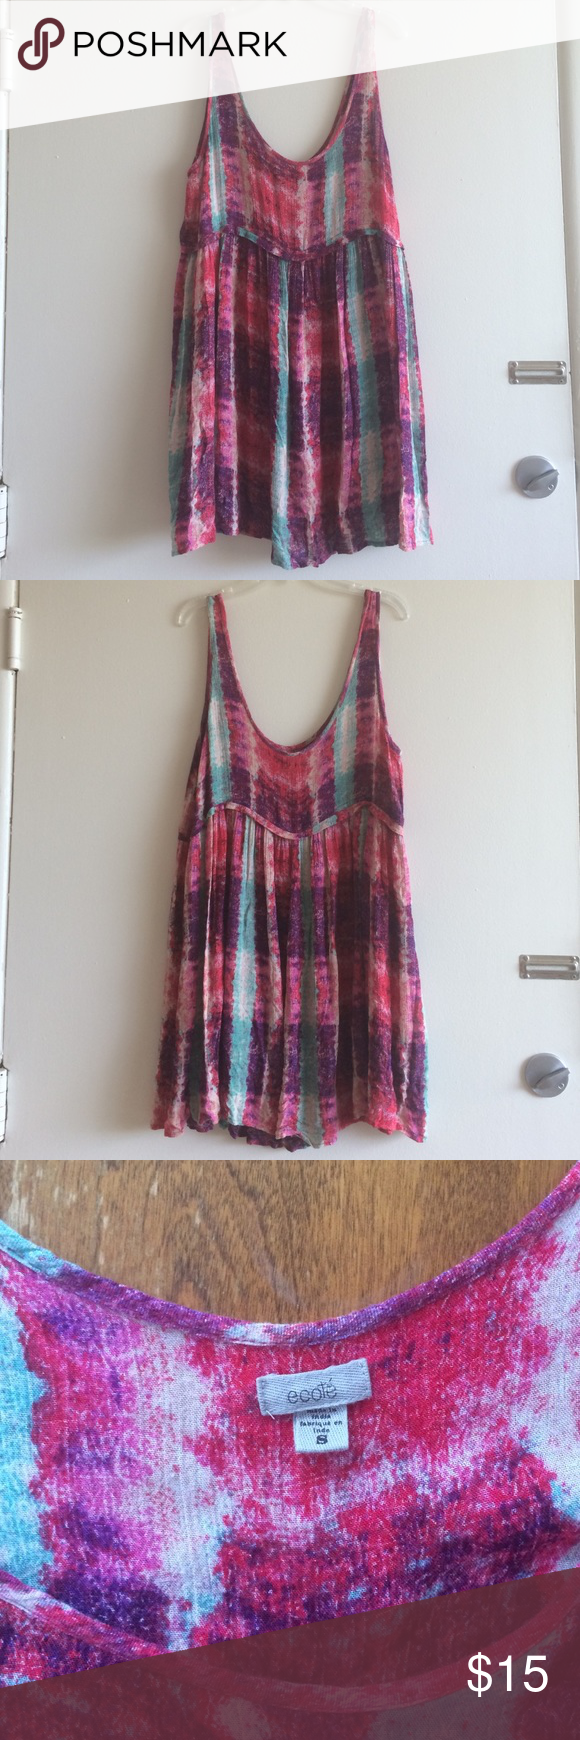 """Ecoté swing tank dress Multicolor 100% rayon loose swing dress with empire waist. Good condition except for a worn spot on the left strap (see pic 4). About 33"""" long. Urban Outfitters Dresses Mini"""